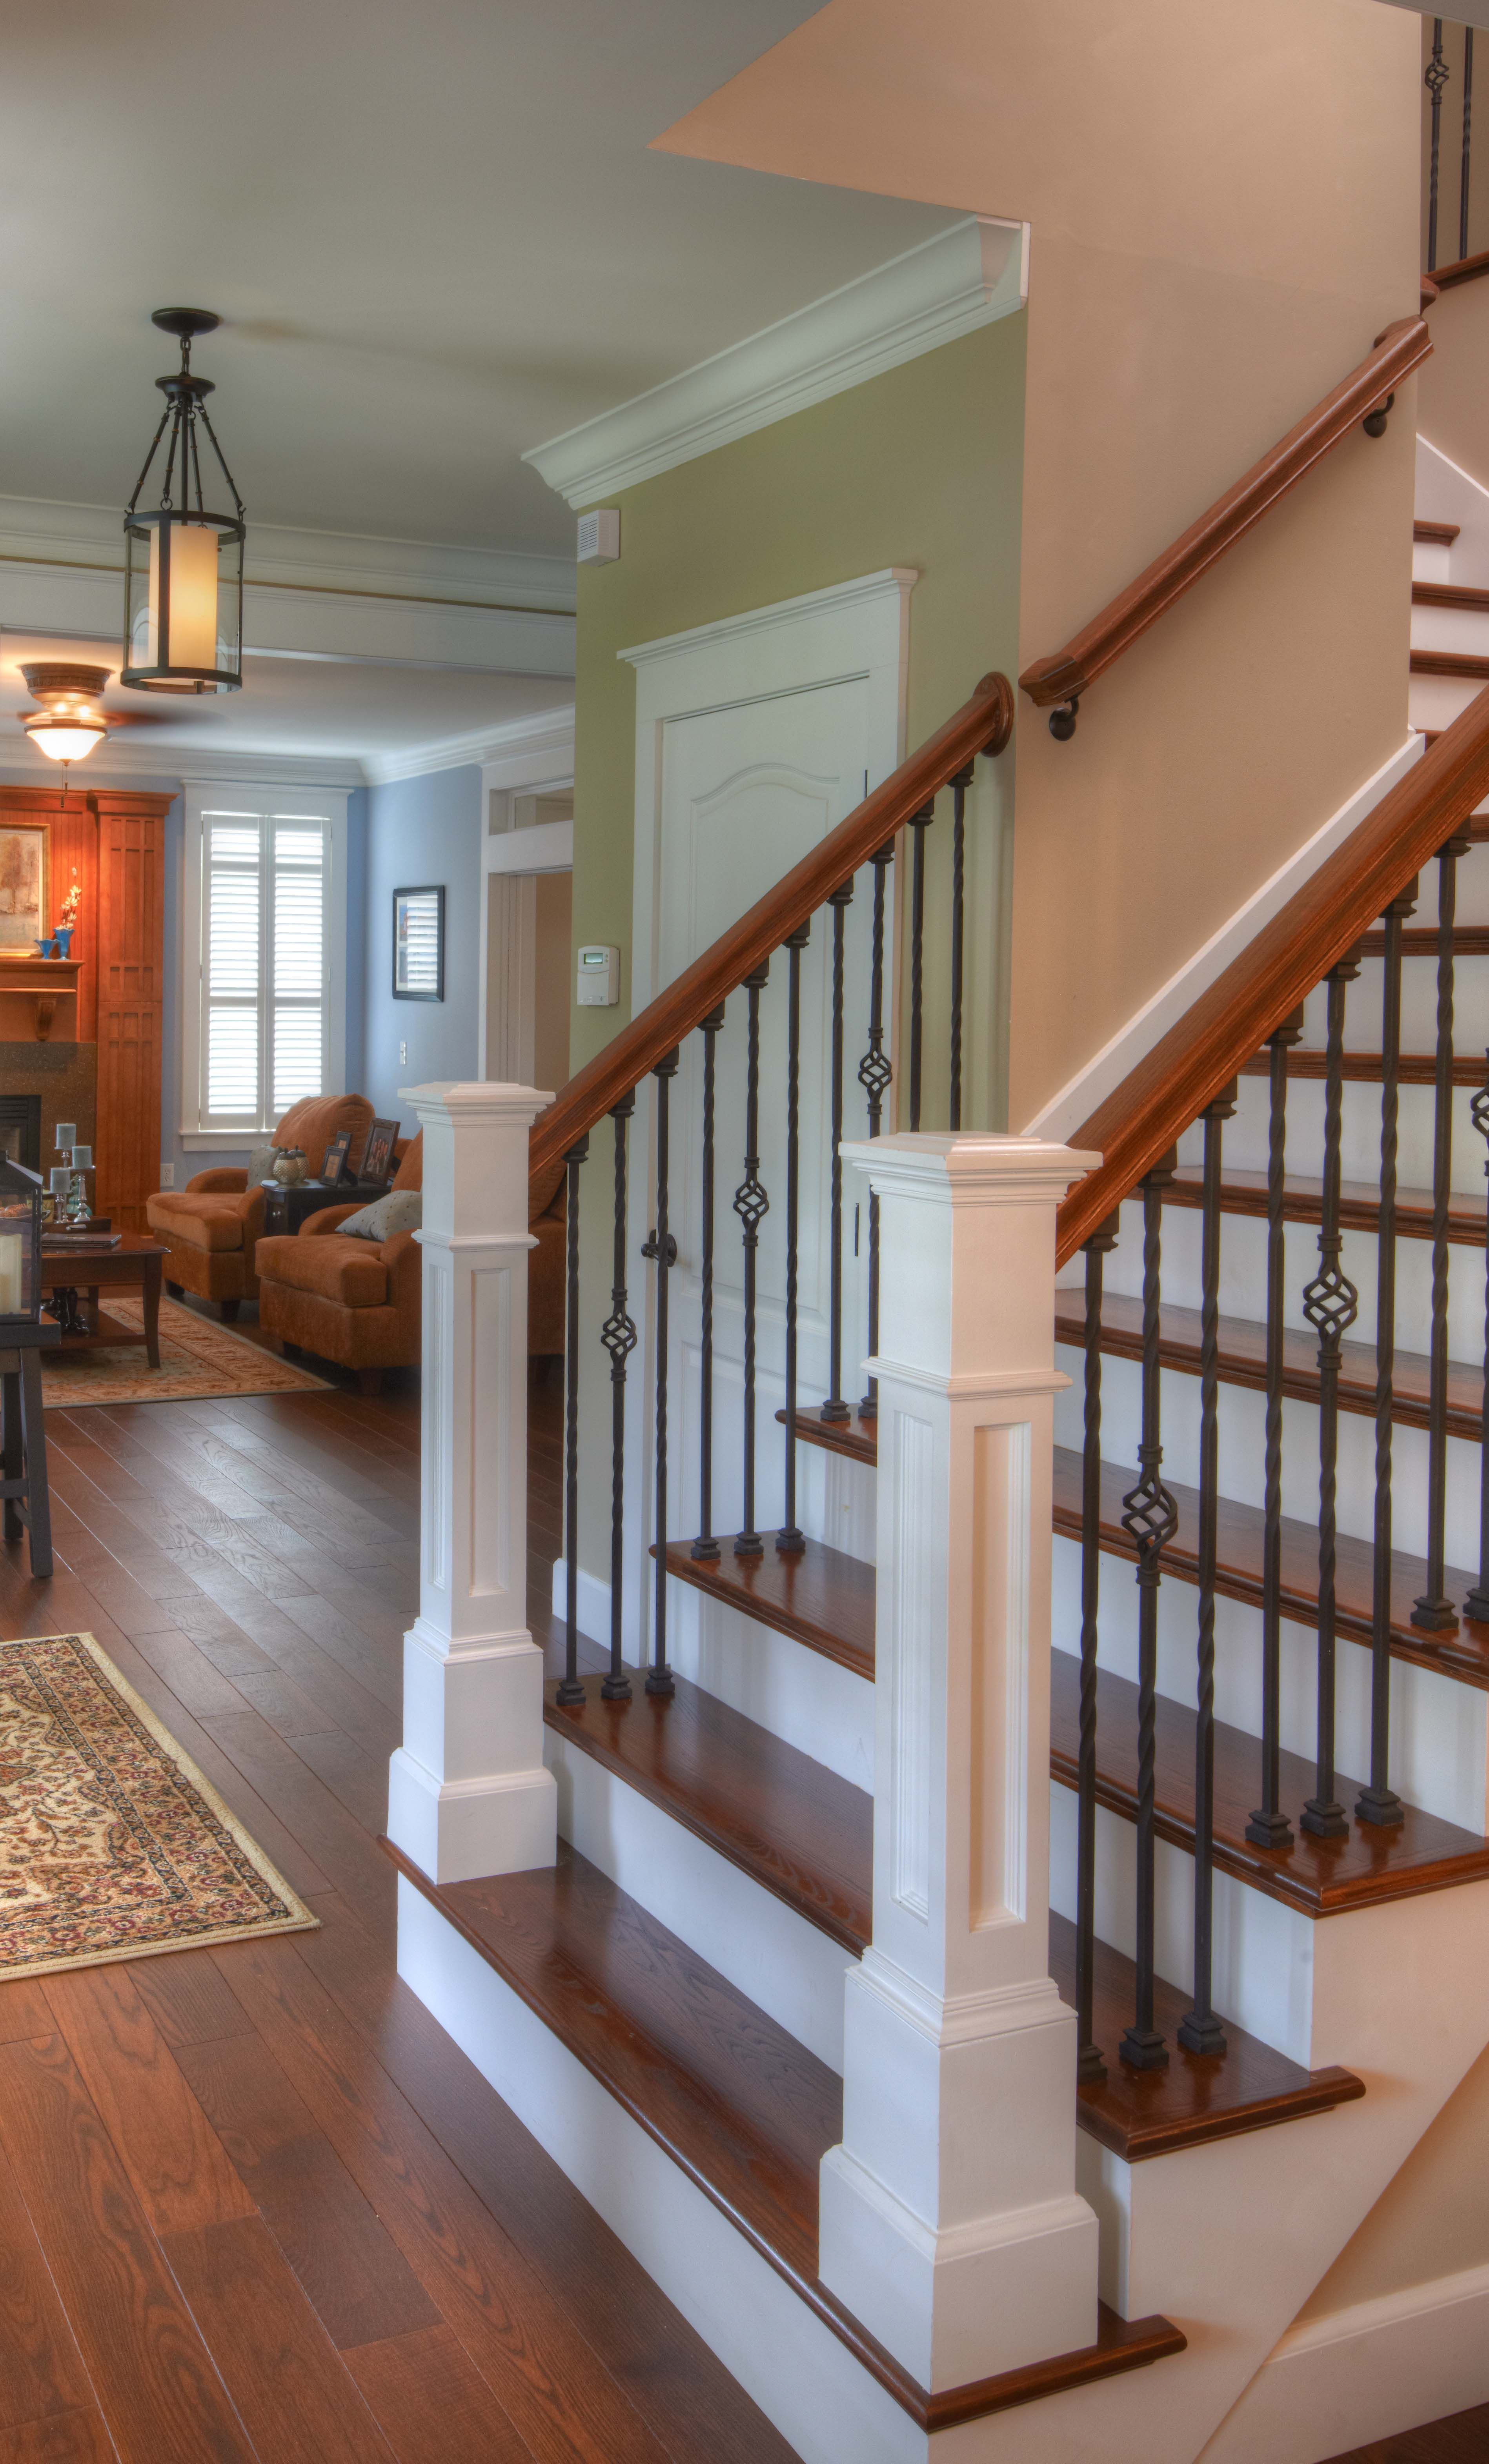 Hardwood Flooring Up The Stairs Classic Look Rod Iron